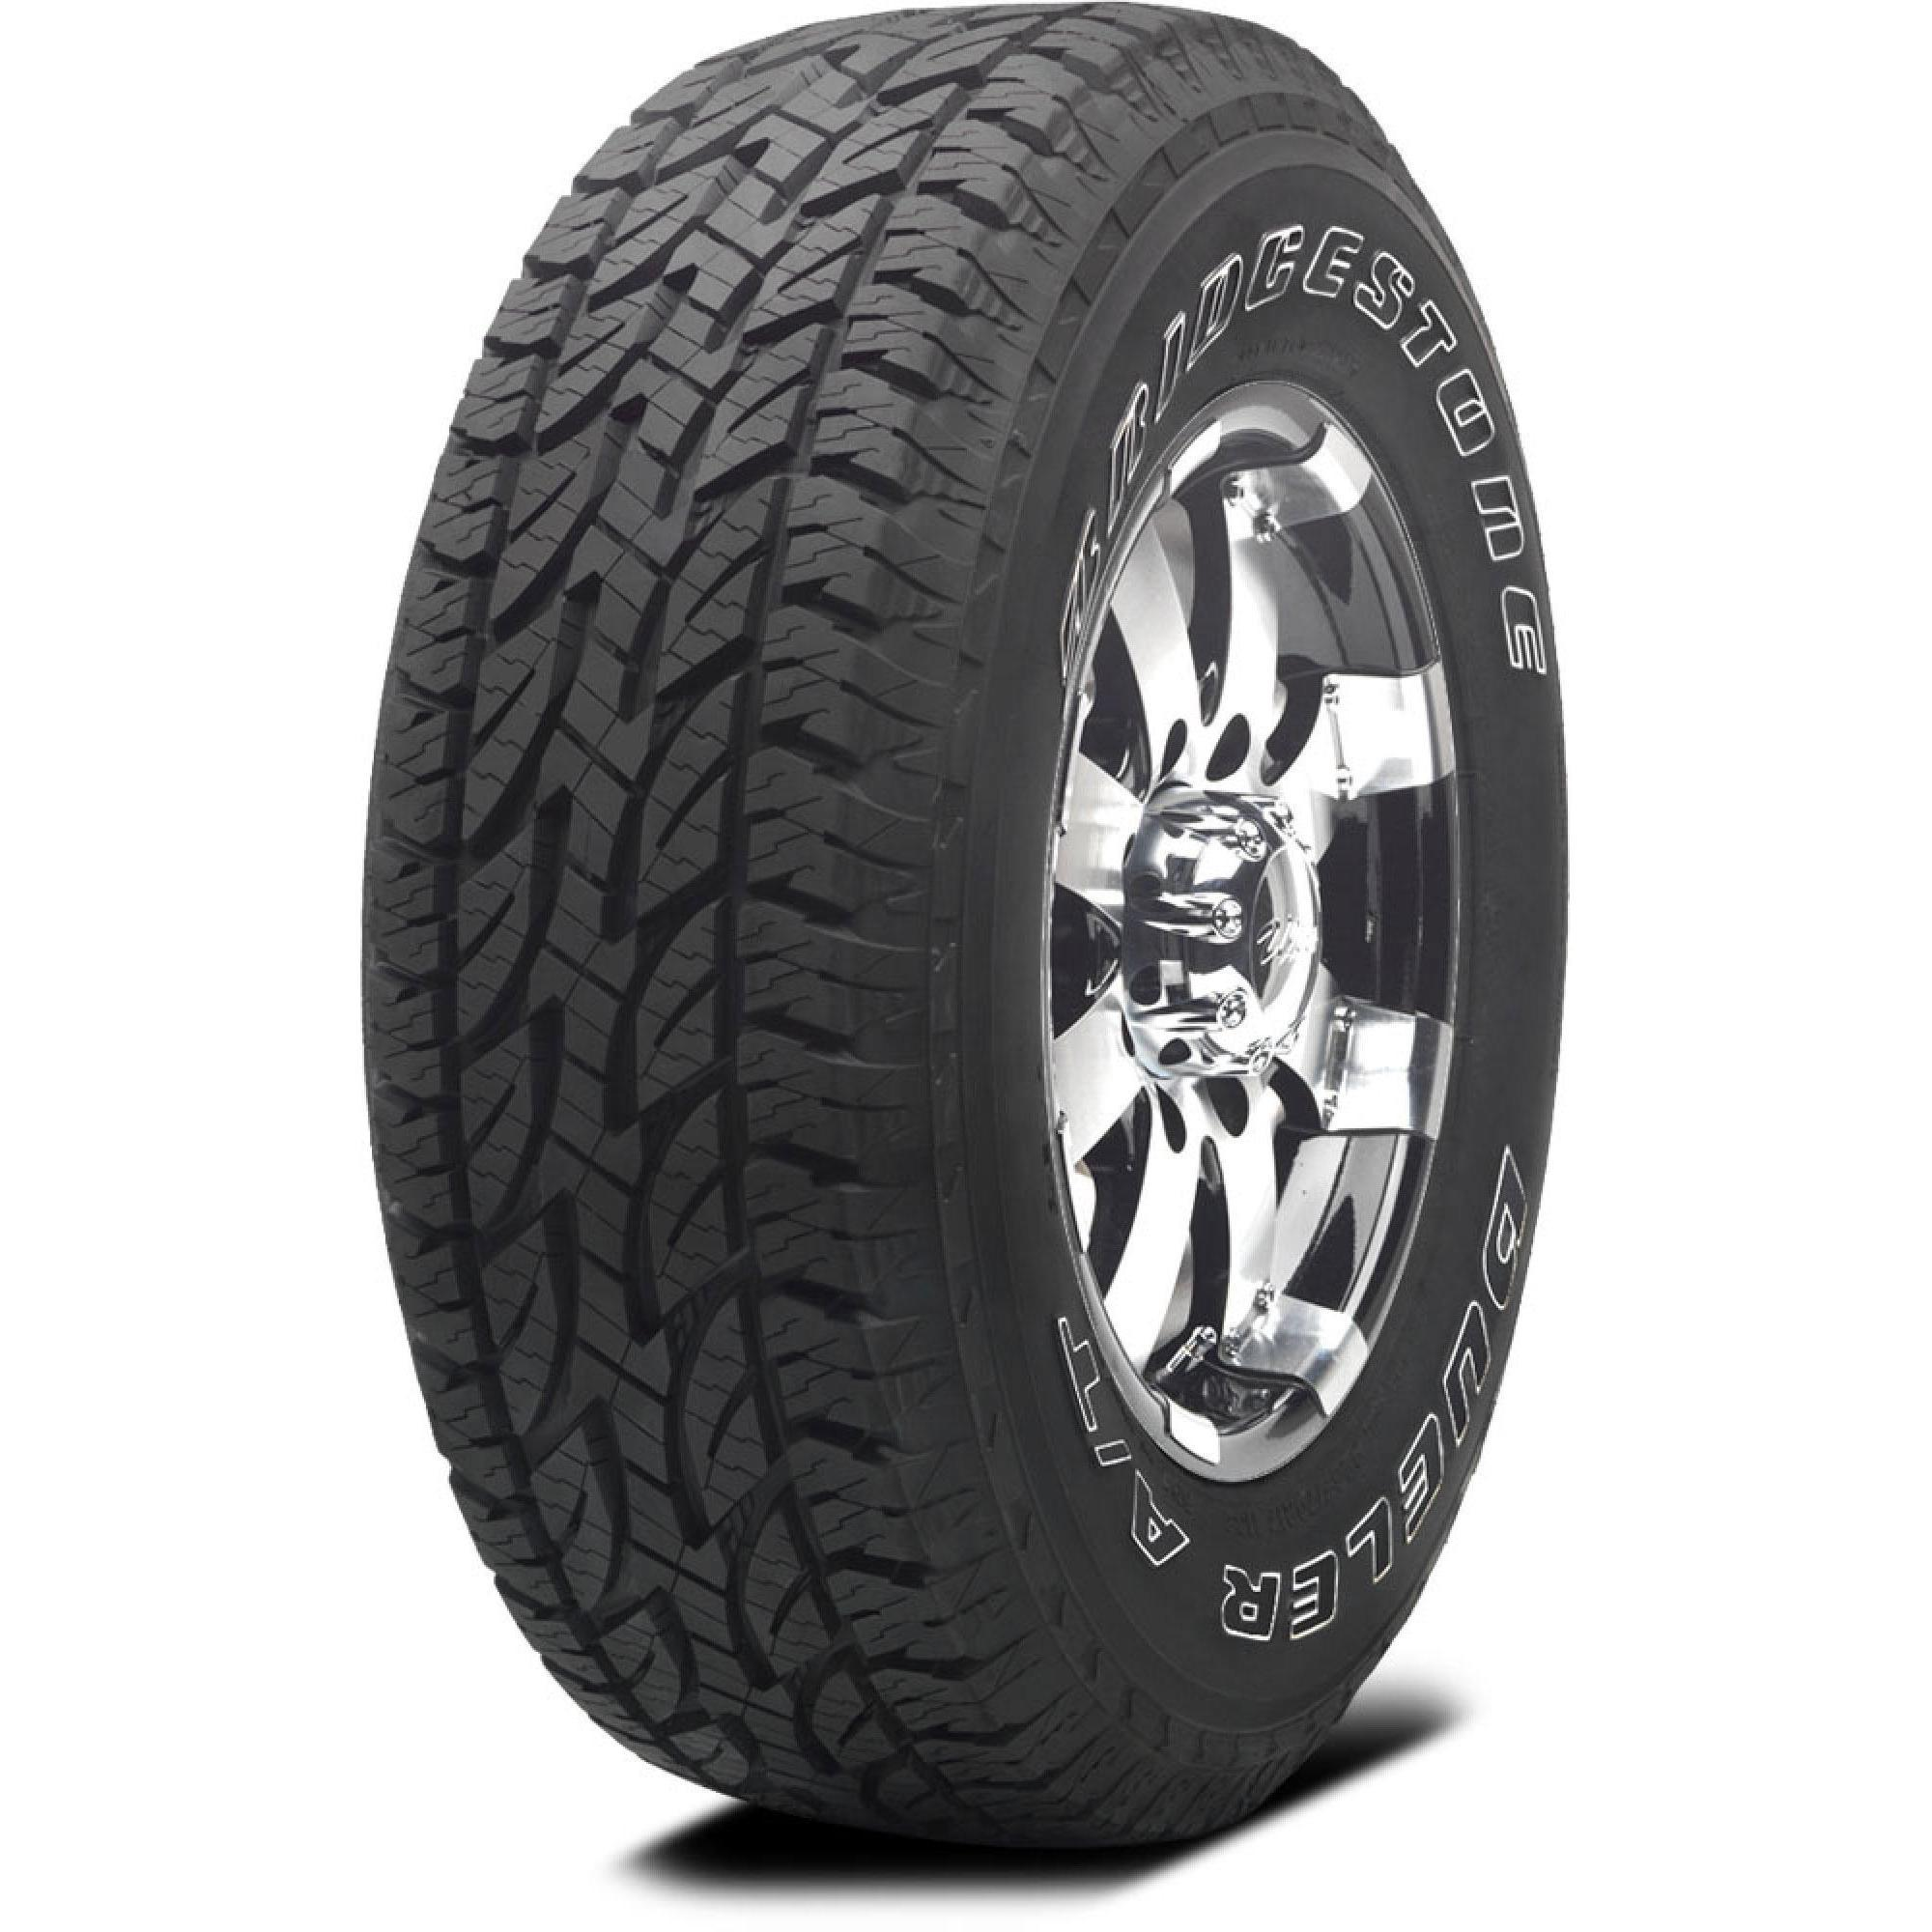 Bridgestone Tire Deals >> Bridgestone Dueler A/T REVO 2 | TireBuyer